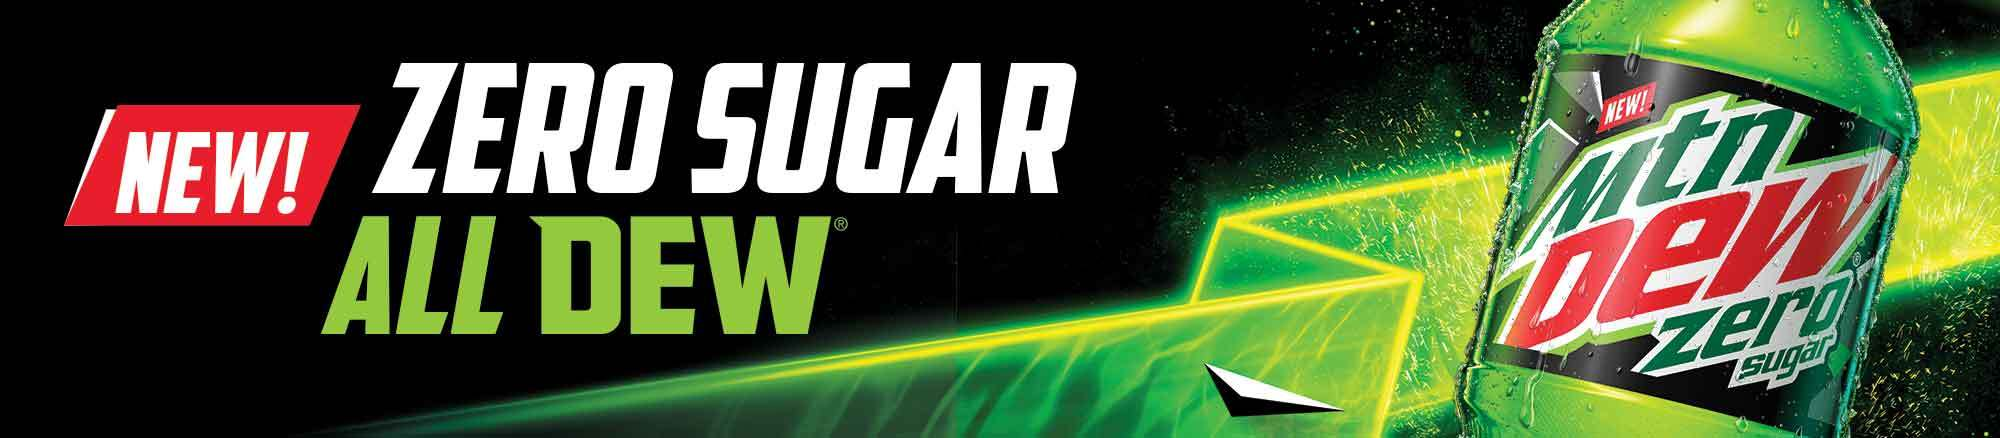 Mtn Dew Zero Sugar is finally here!